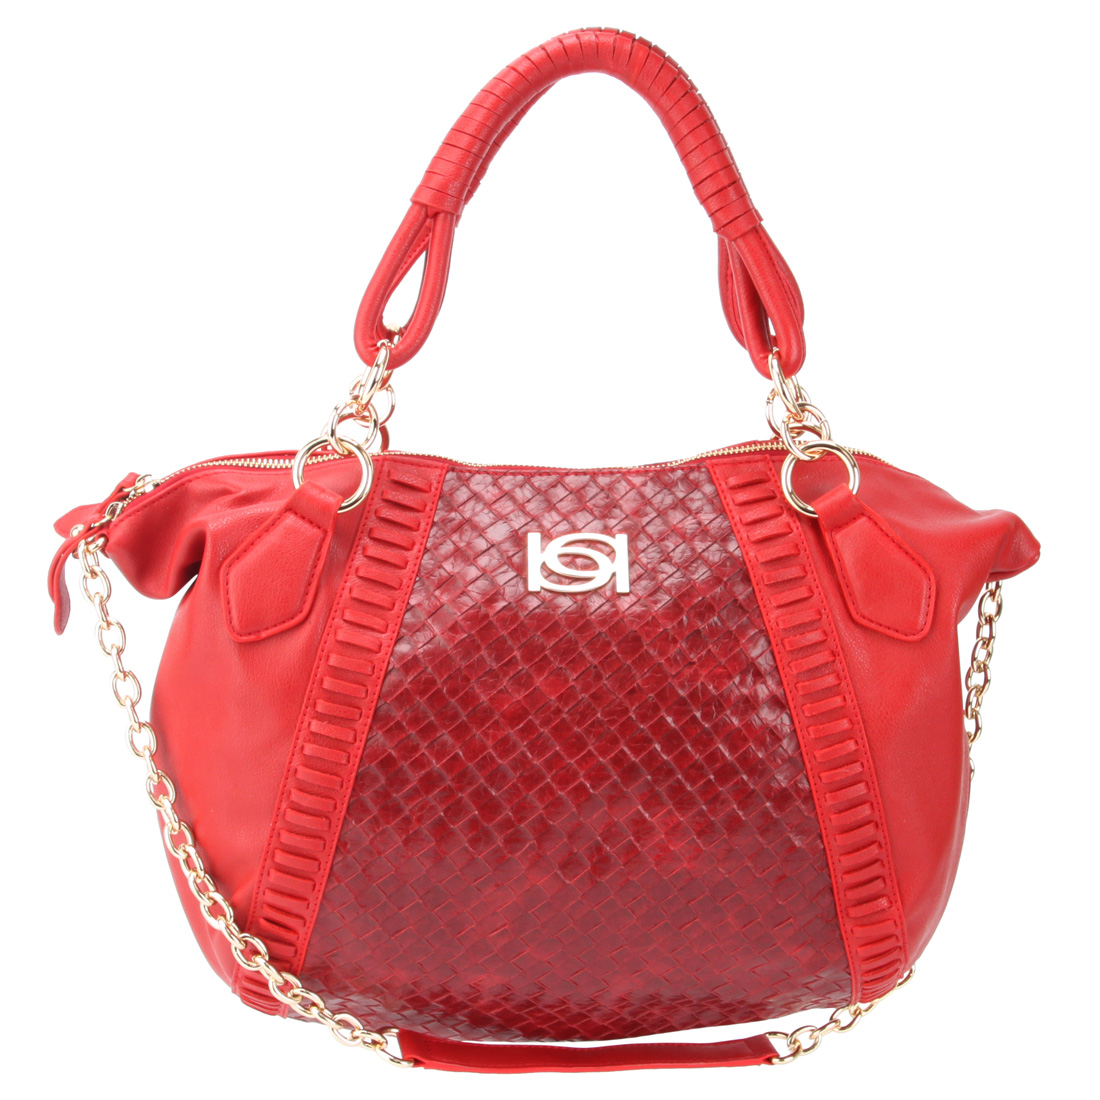 Bebe Woven Grace Satchel -Red